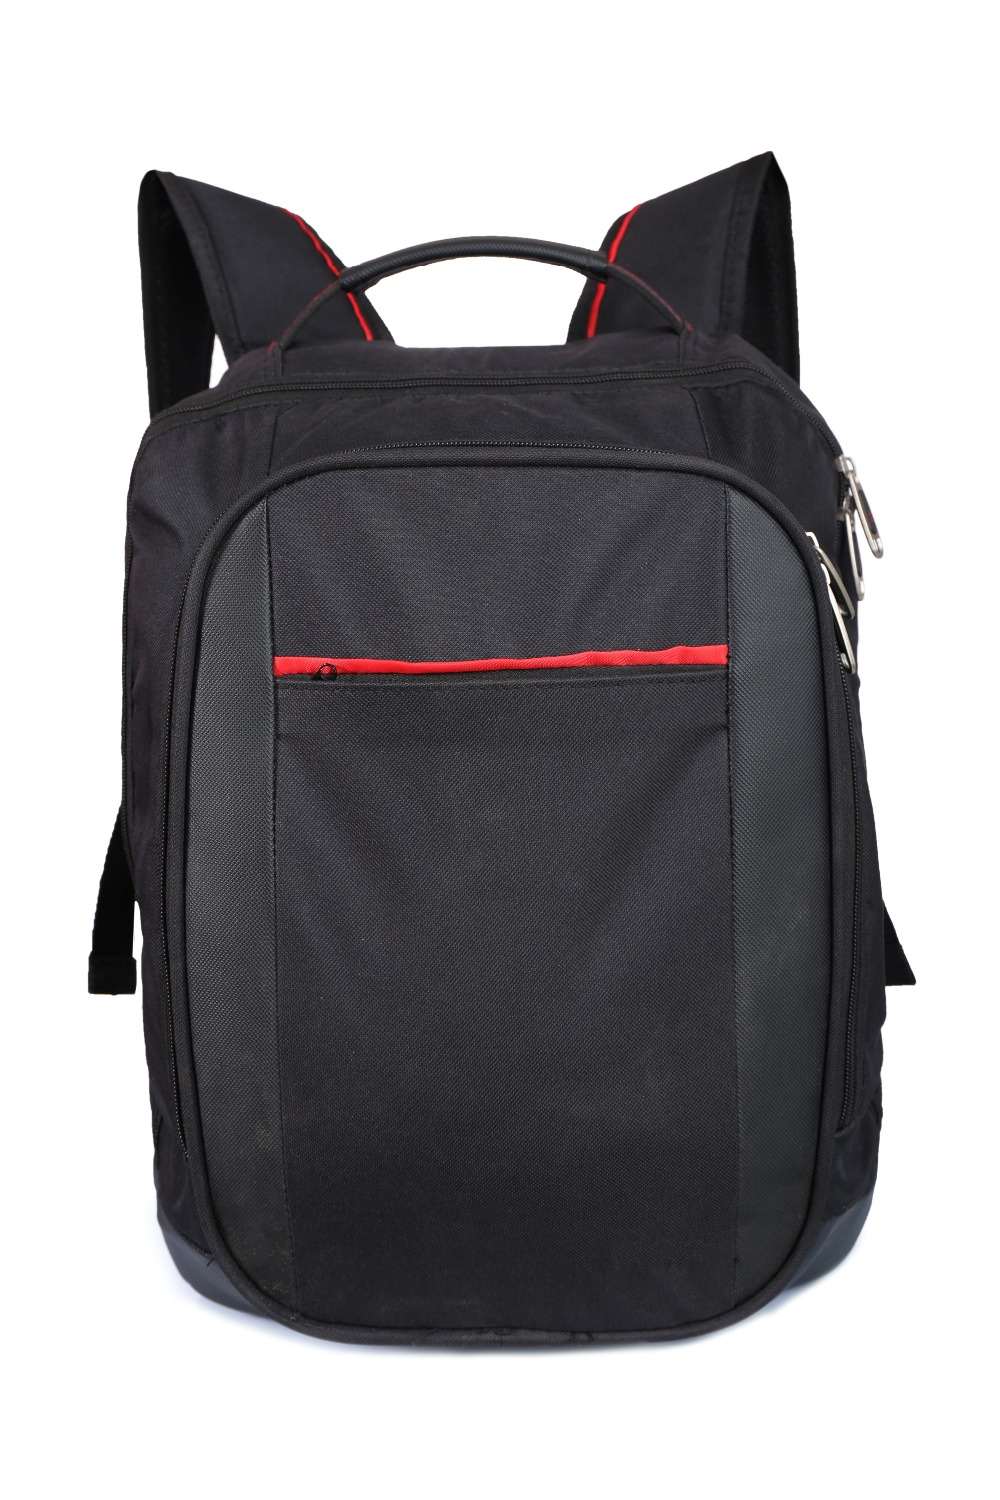 600D polyester with 210D lining Backpack